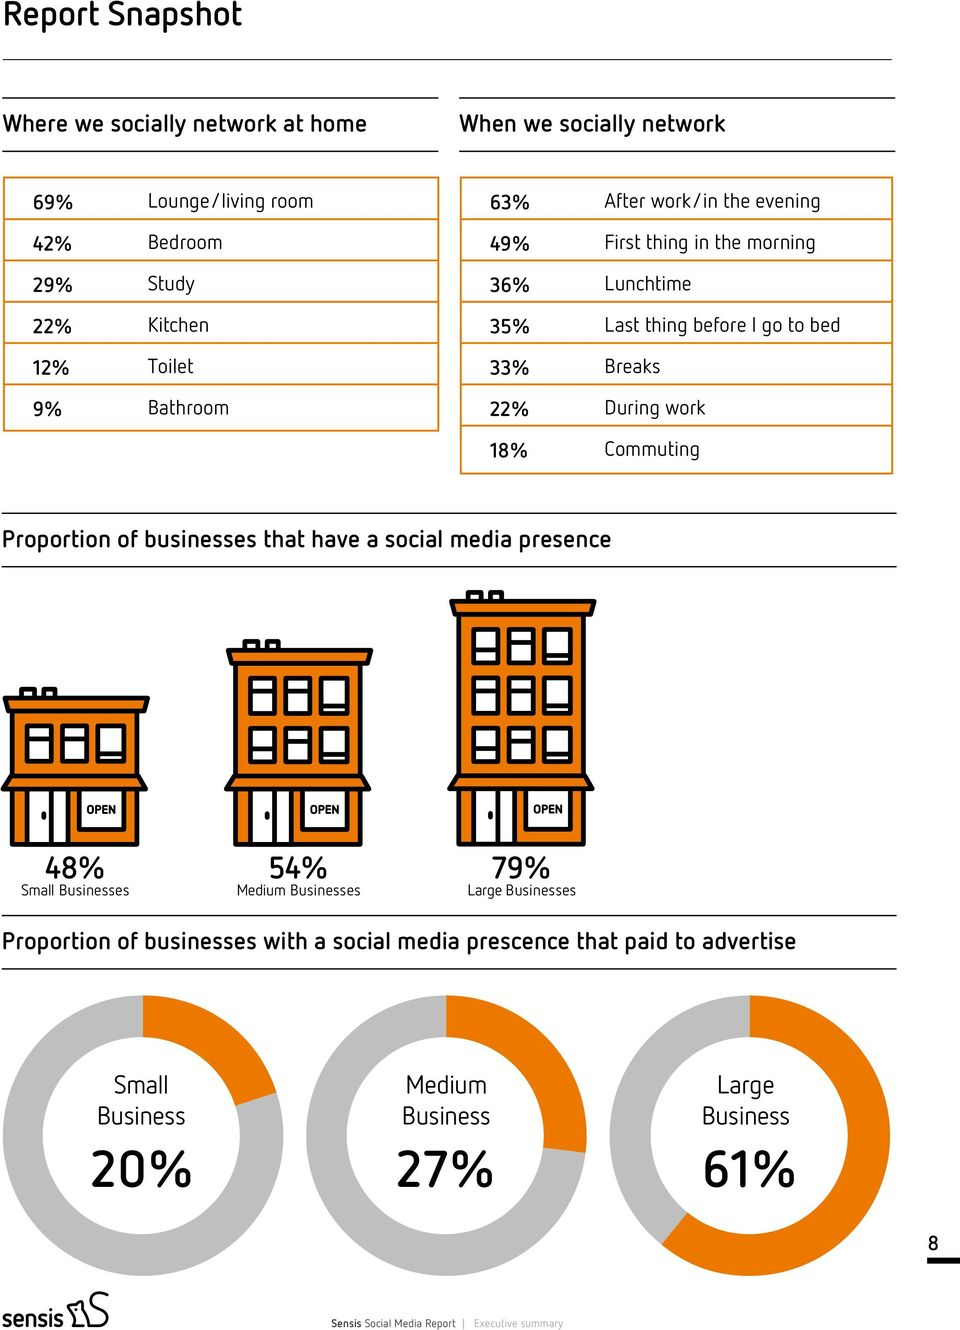 Proportion of businesses that have a social media presence OPEN OPEN OPEN 48% Small Businesses 54% Medium Businesses 79% Large Businesses Proportion of